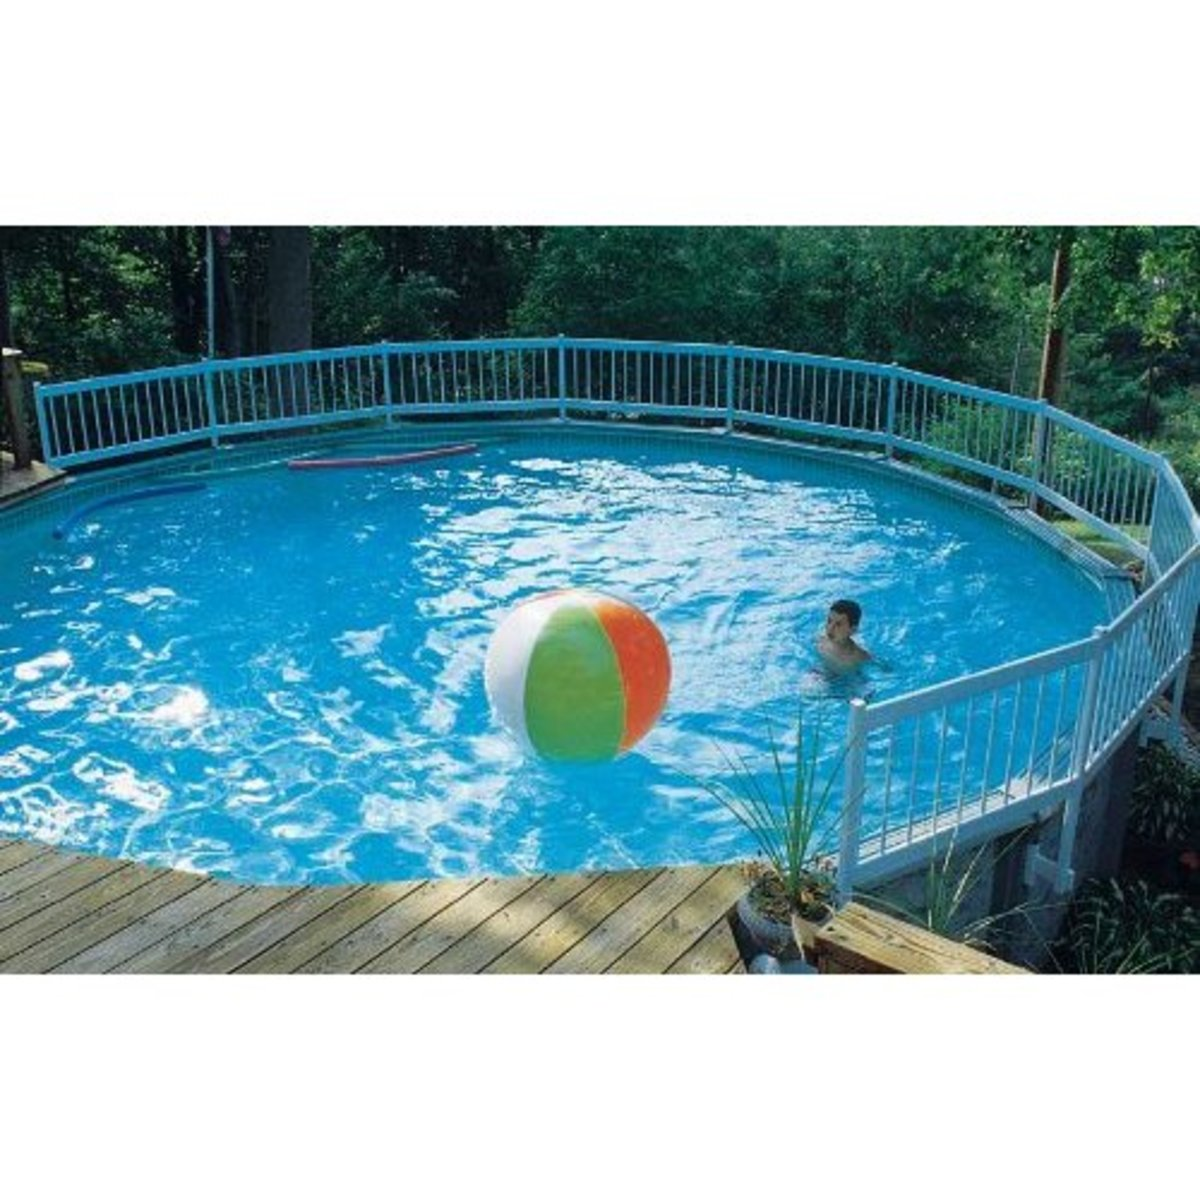 Above Ground Swimming Pools Many Benefits Helpful Videos Included Hubpages